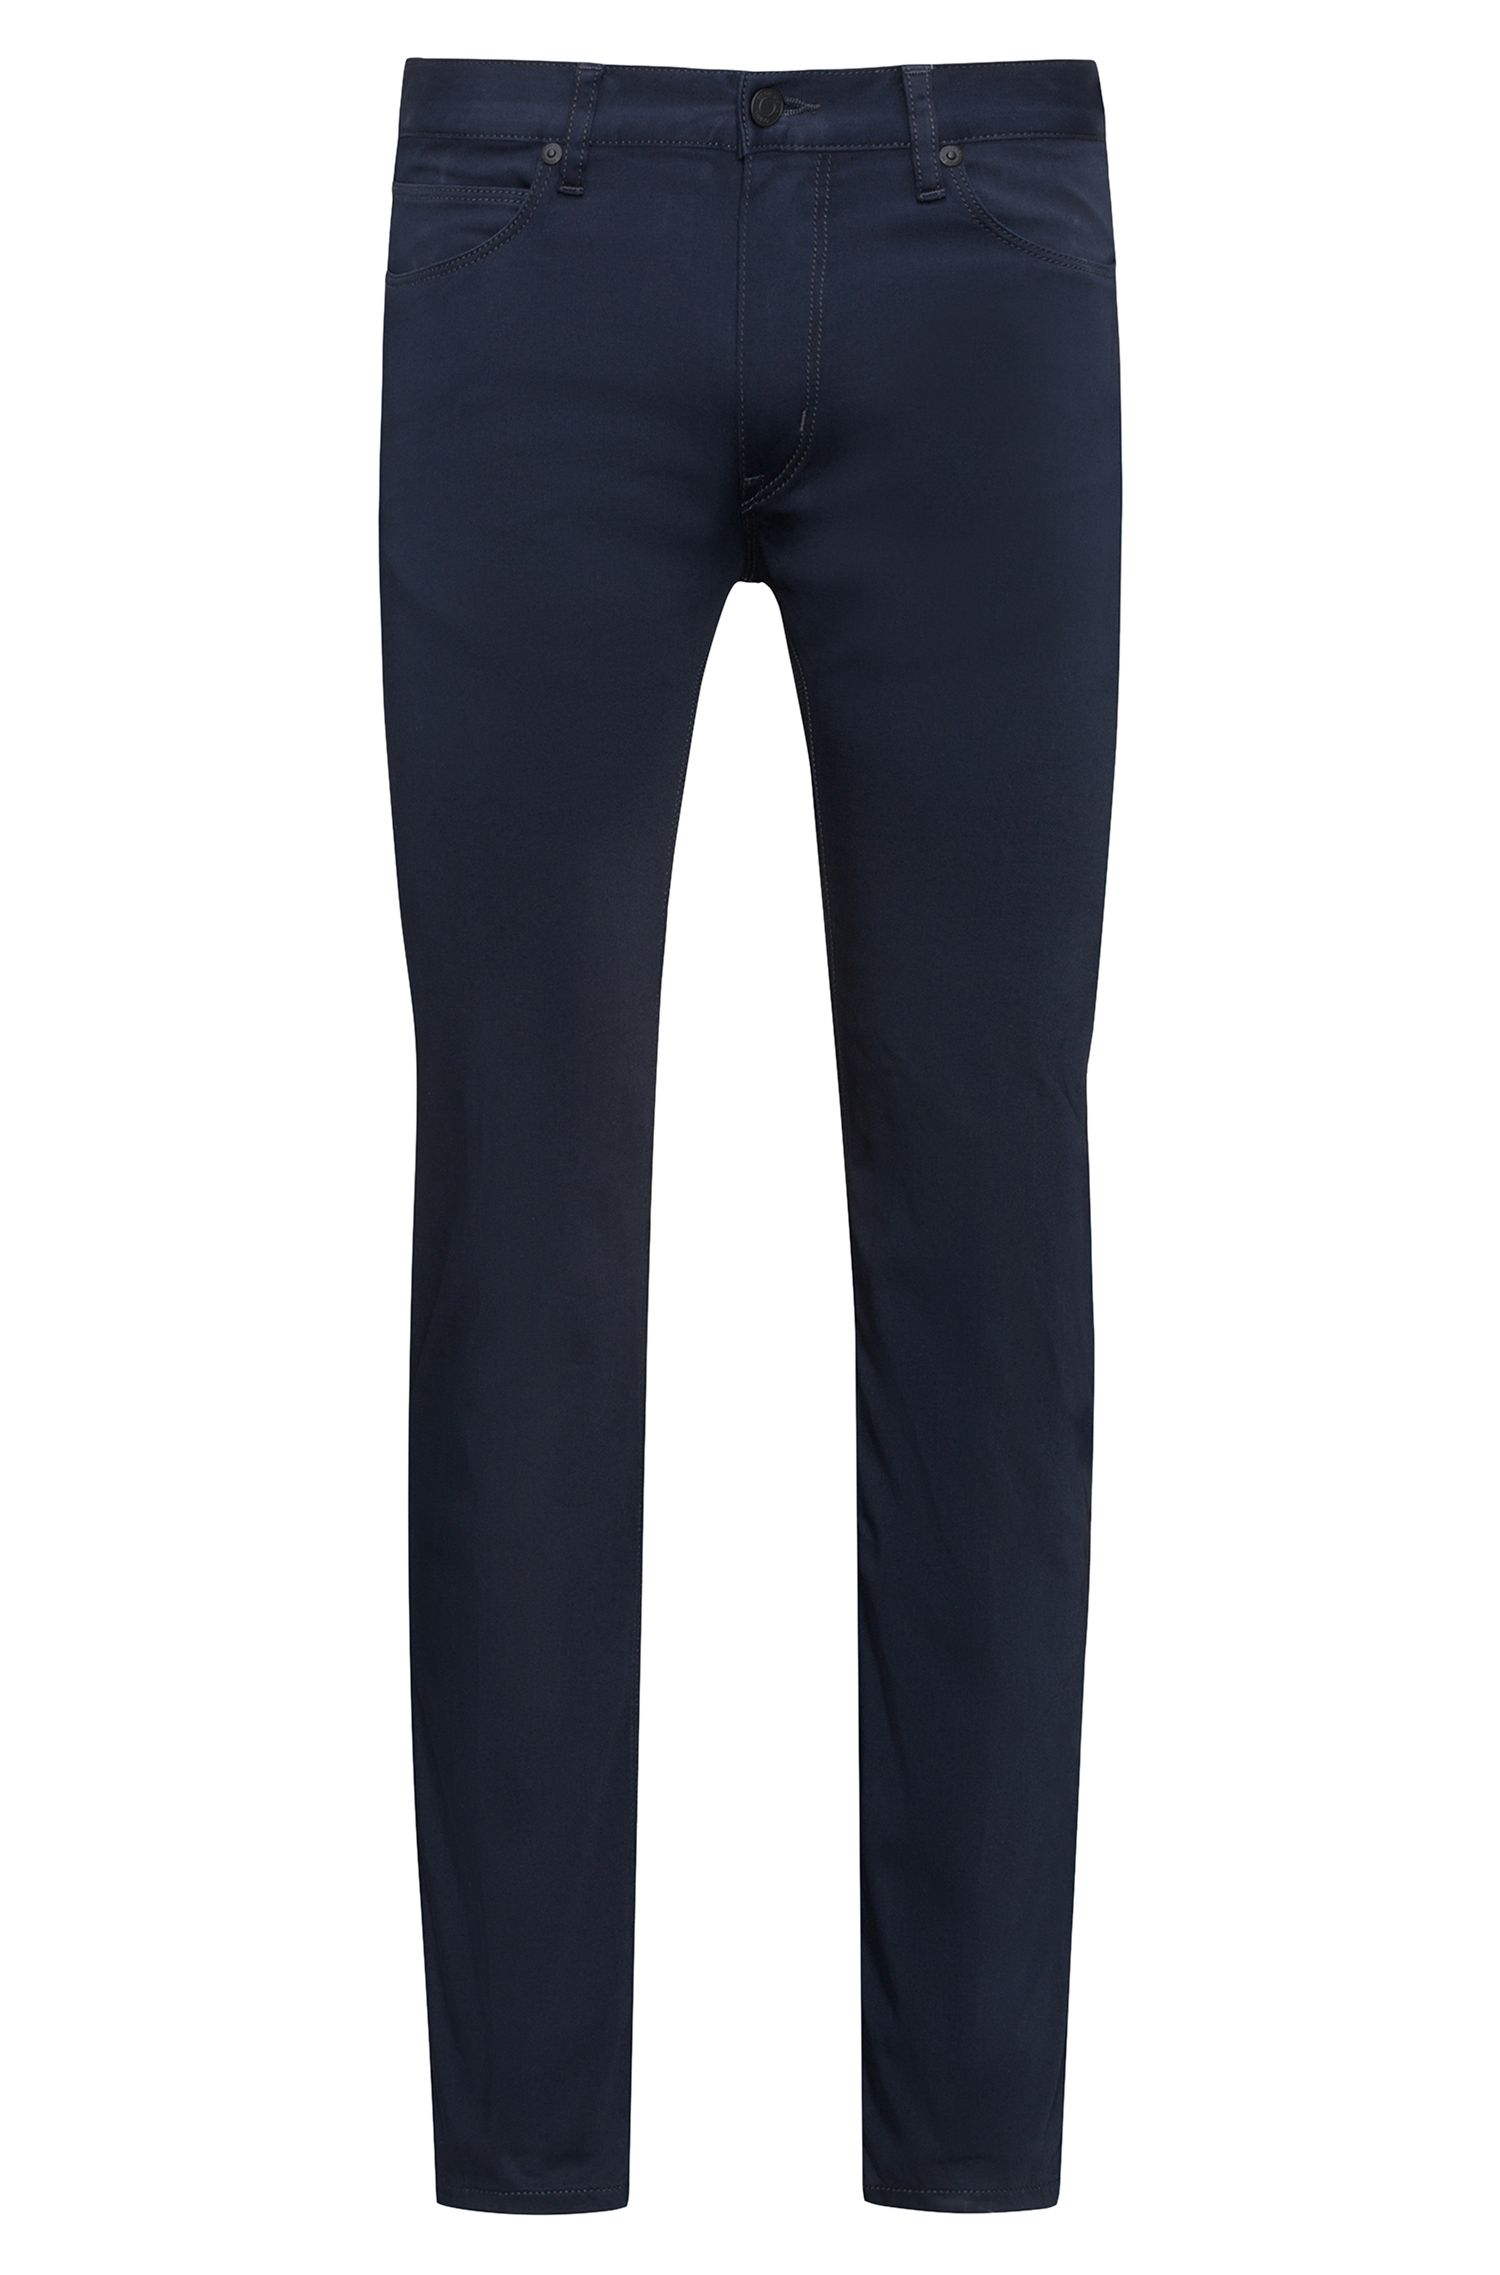 Hugo Boss - Slim-fit jeans in stretch denim with contrast piping - 1